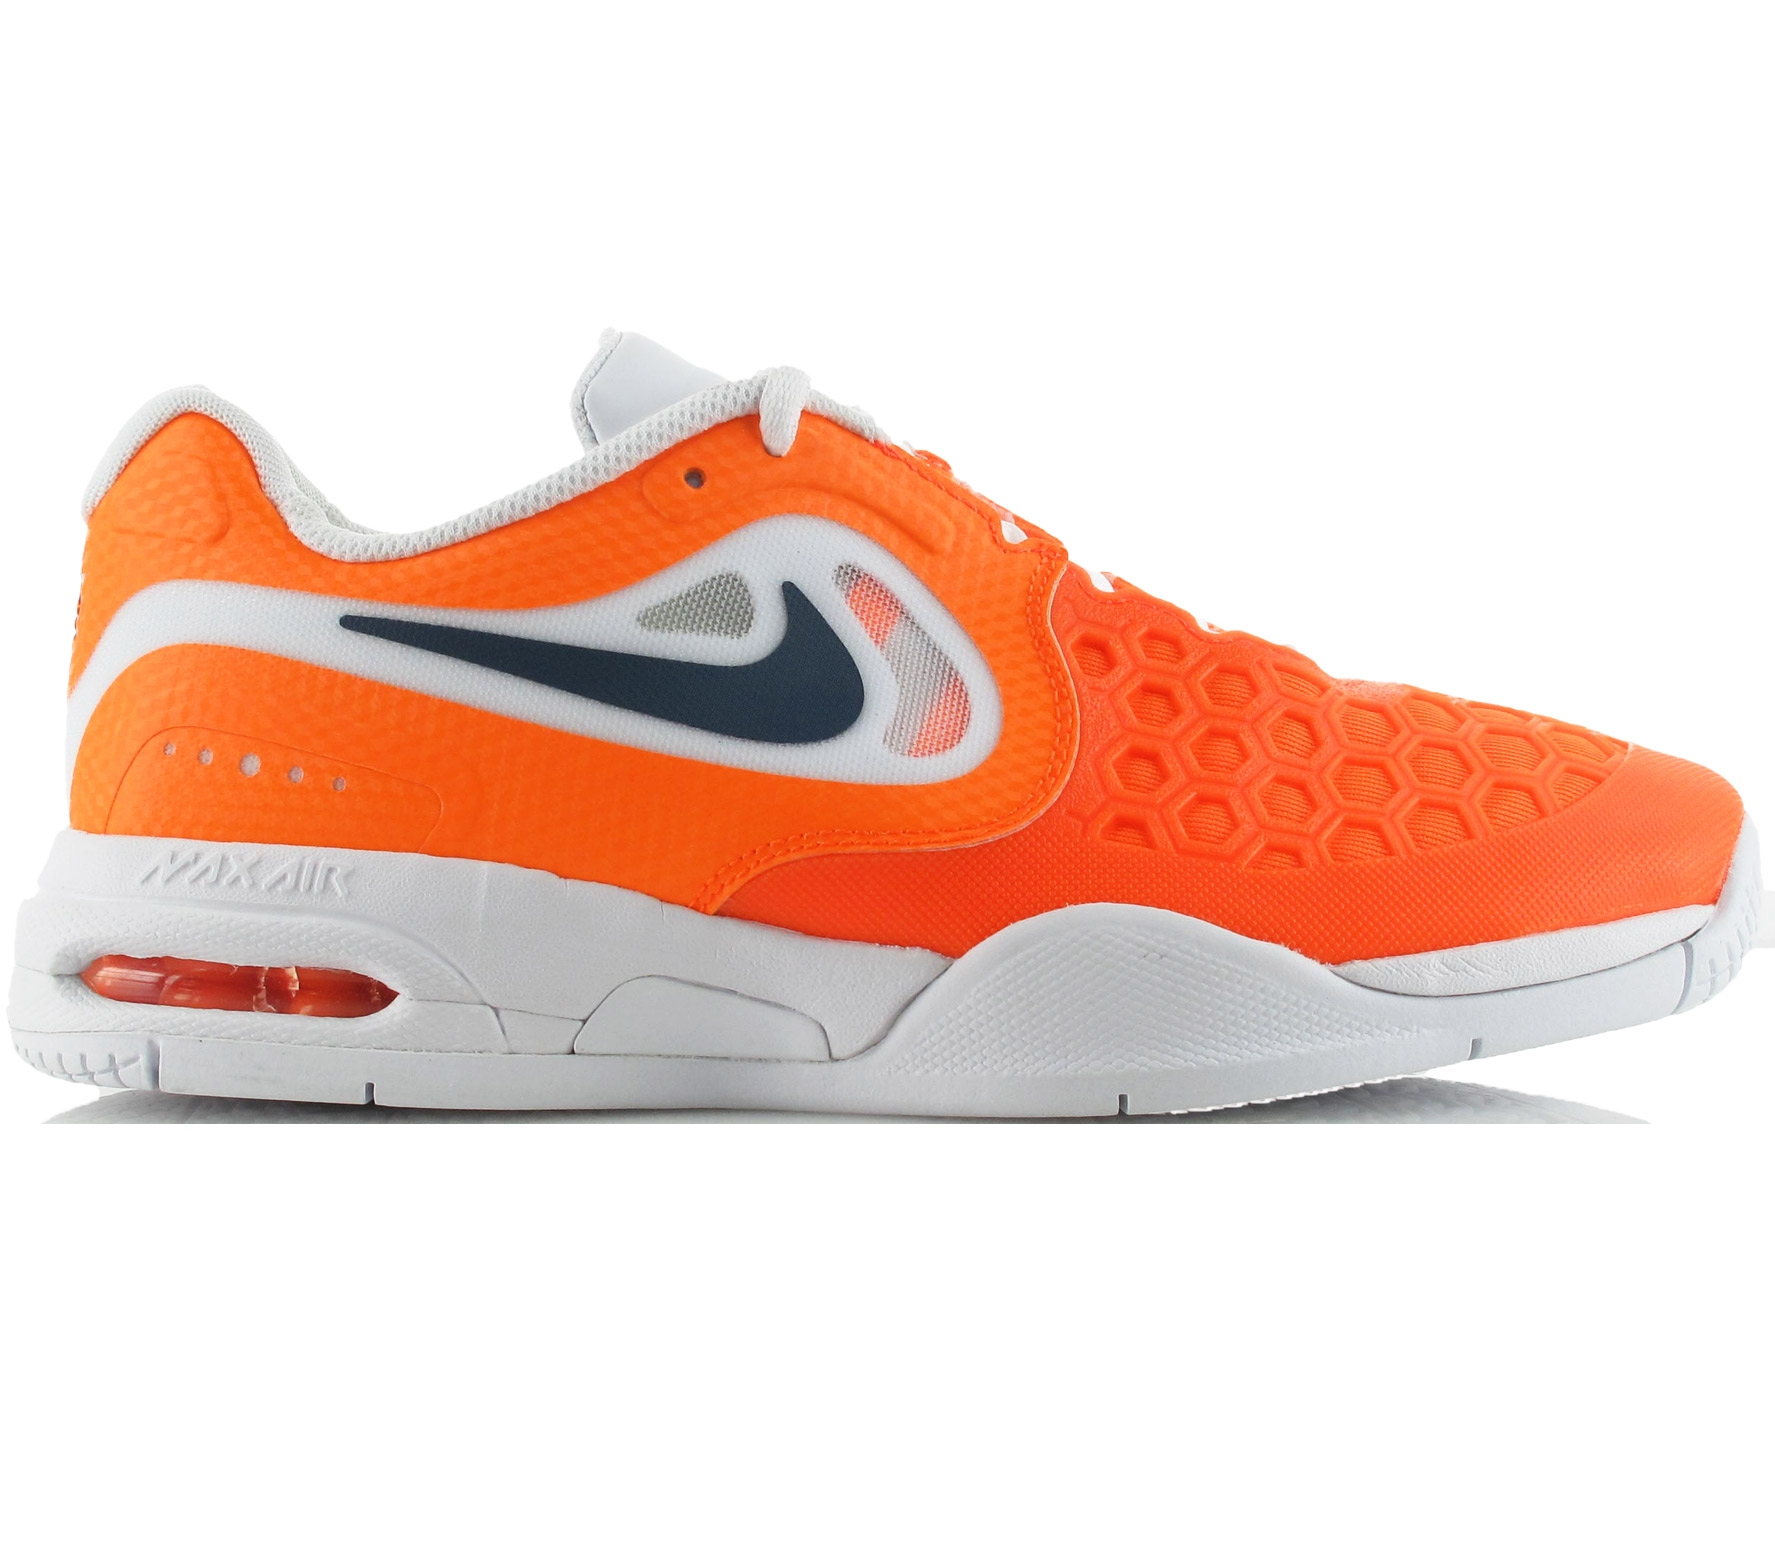 Nike - Tennis shoe Boys Air Max Courtballistec 4.3 - SP13